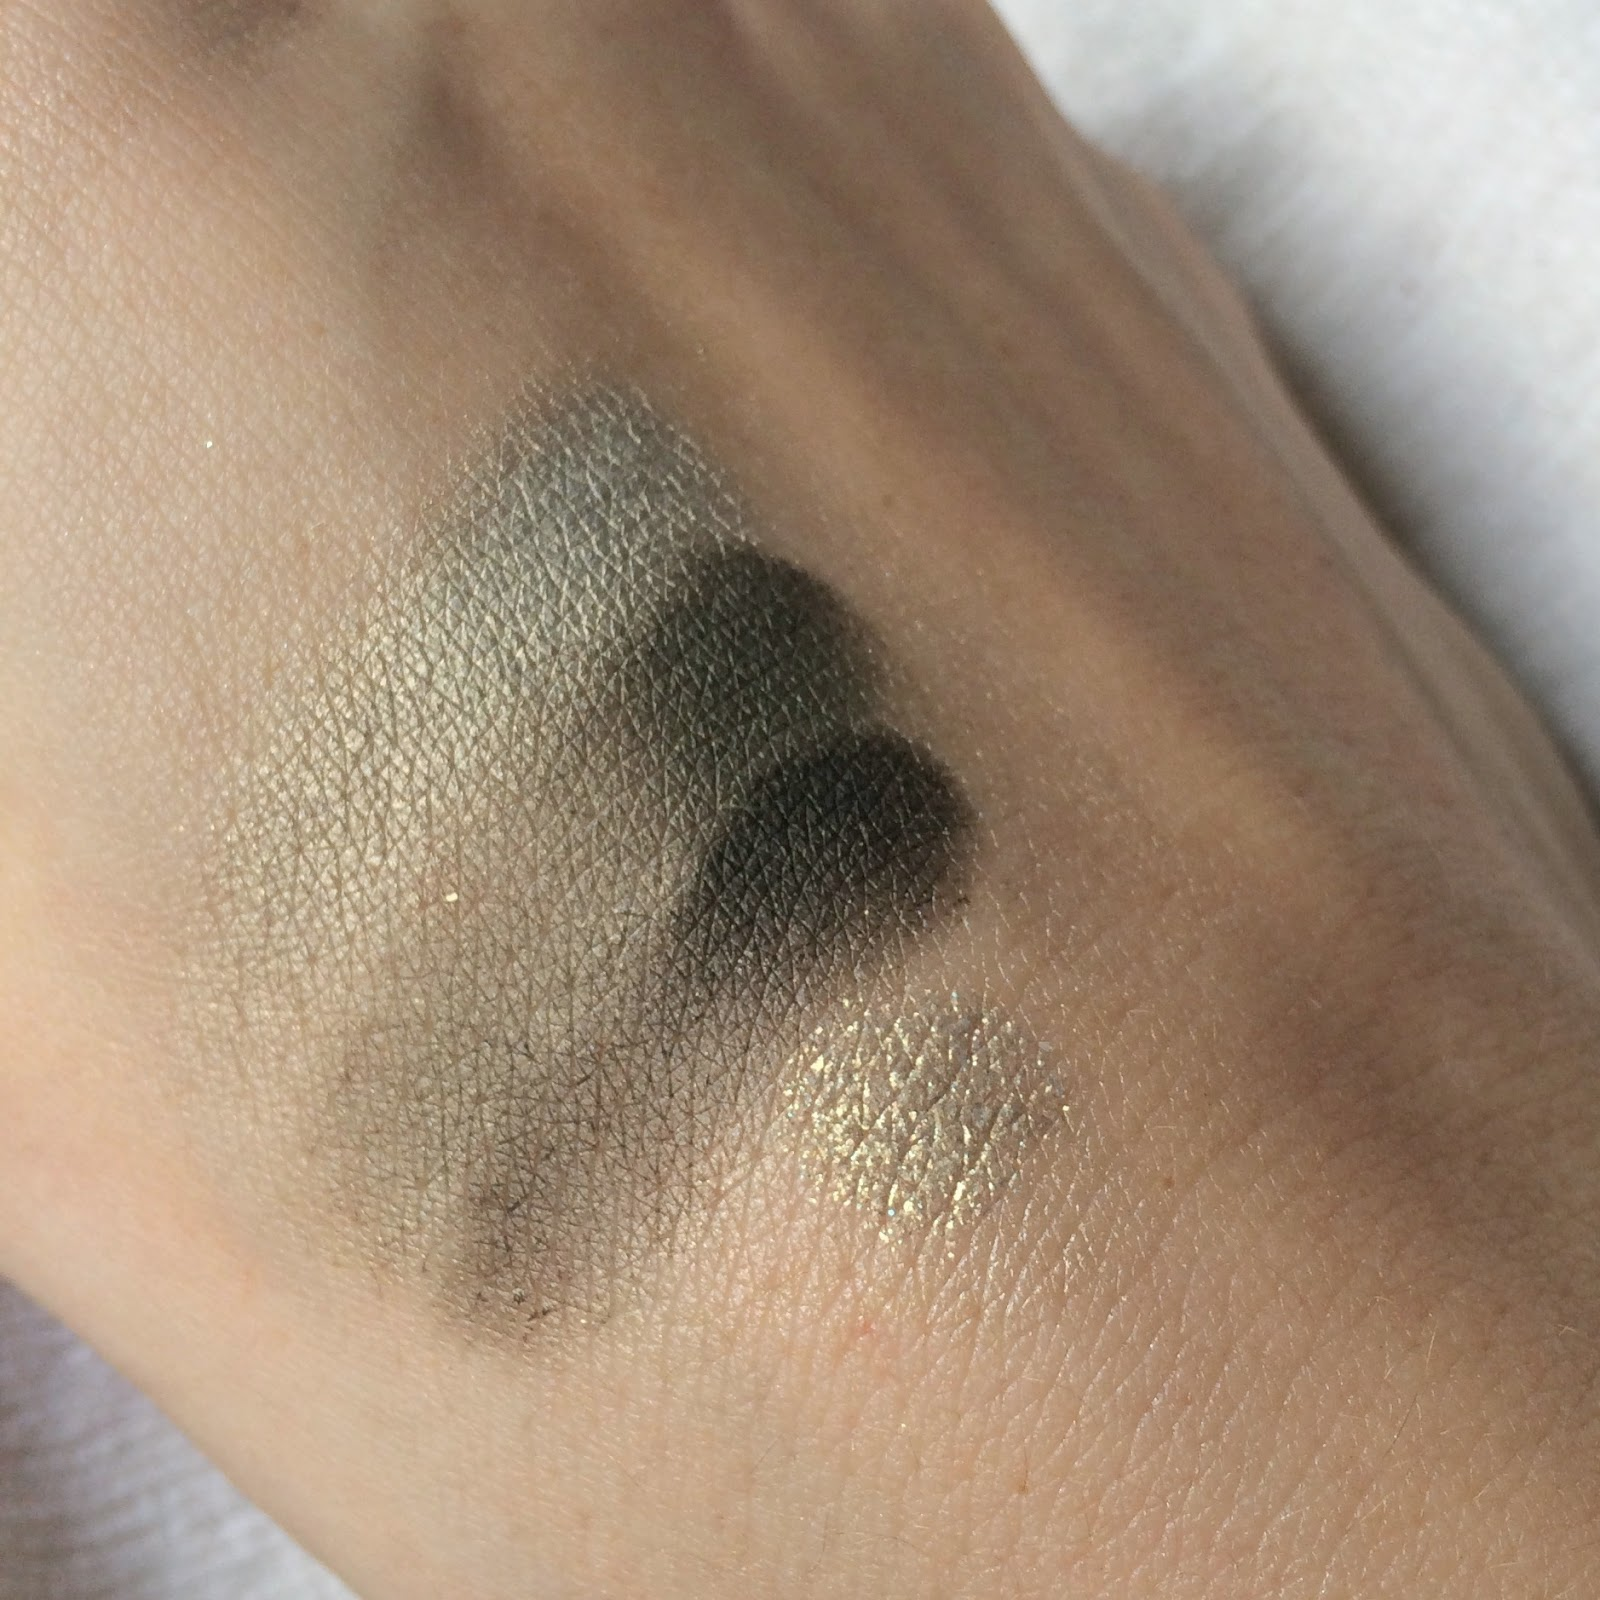 Bourjois-Quad-Smoky-Stories-eyeshadow-rock-this-khaki-green-swatch